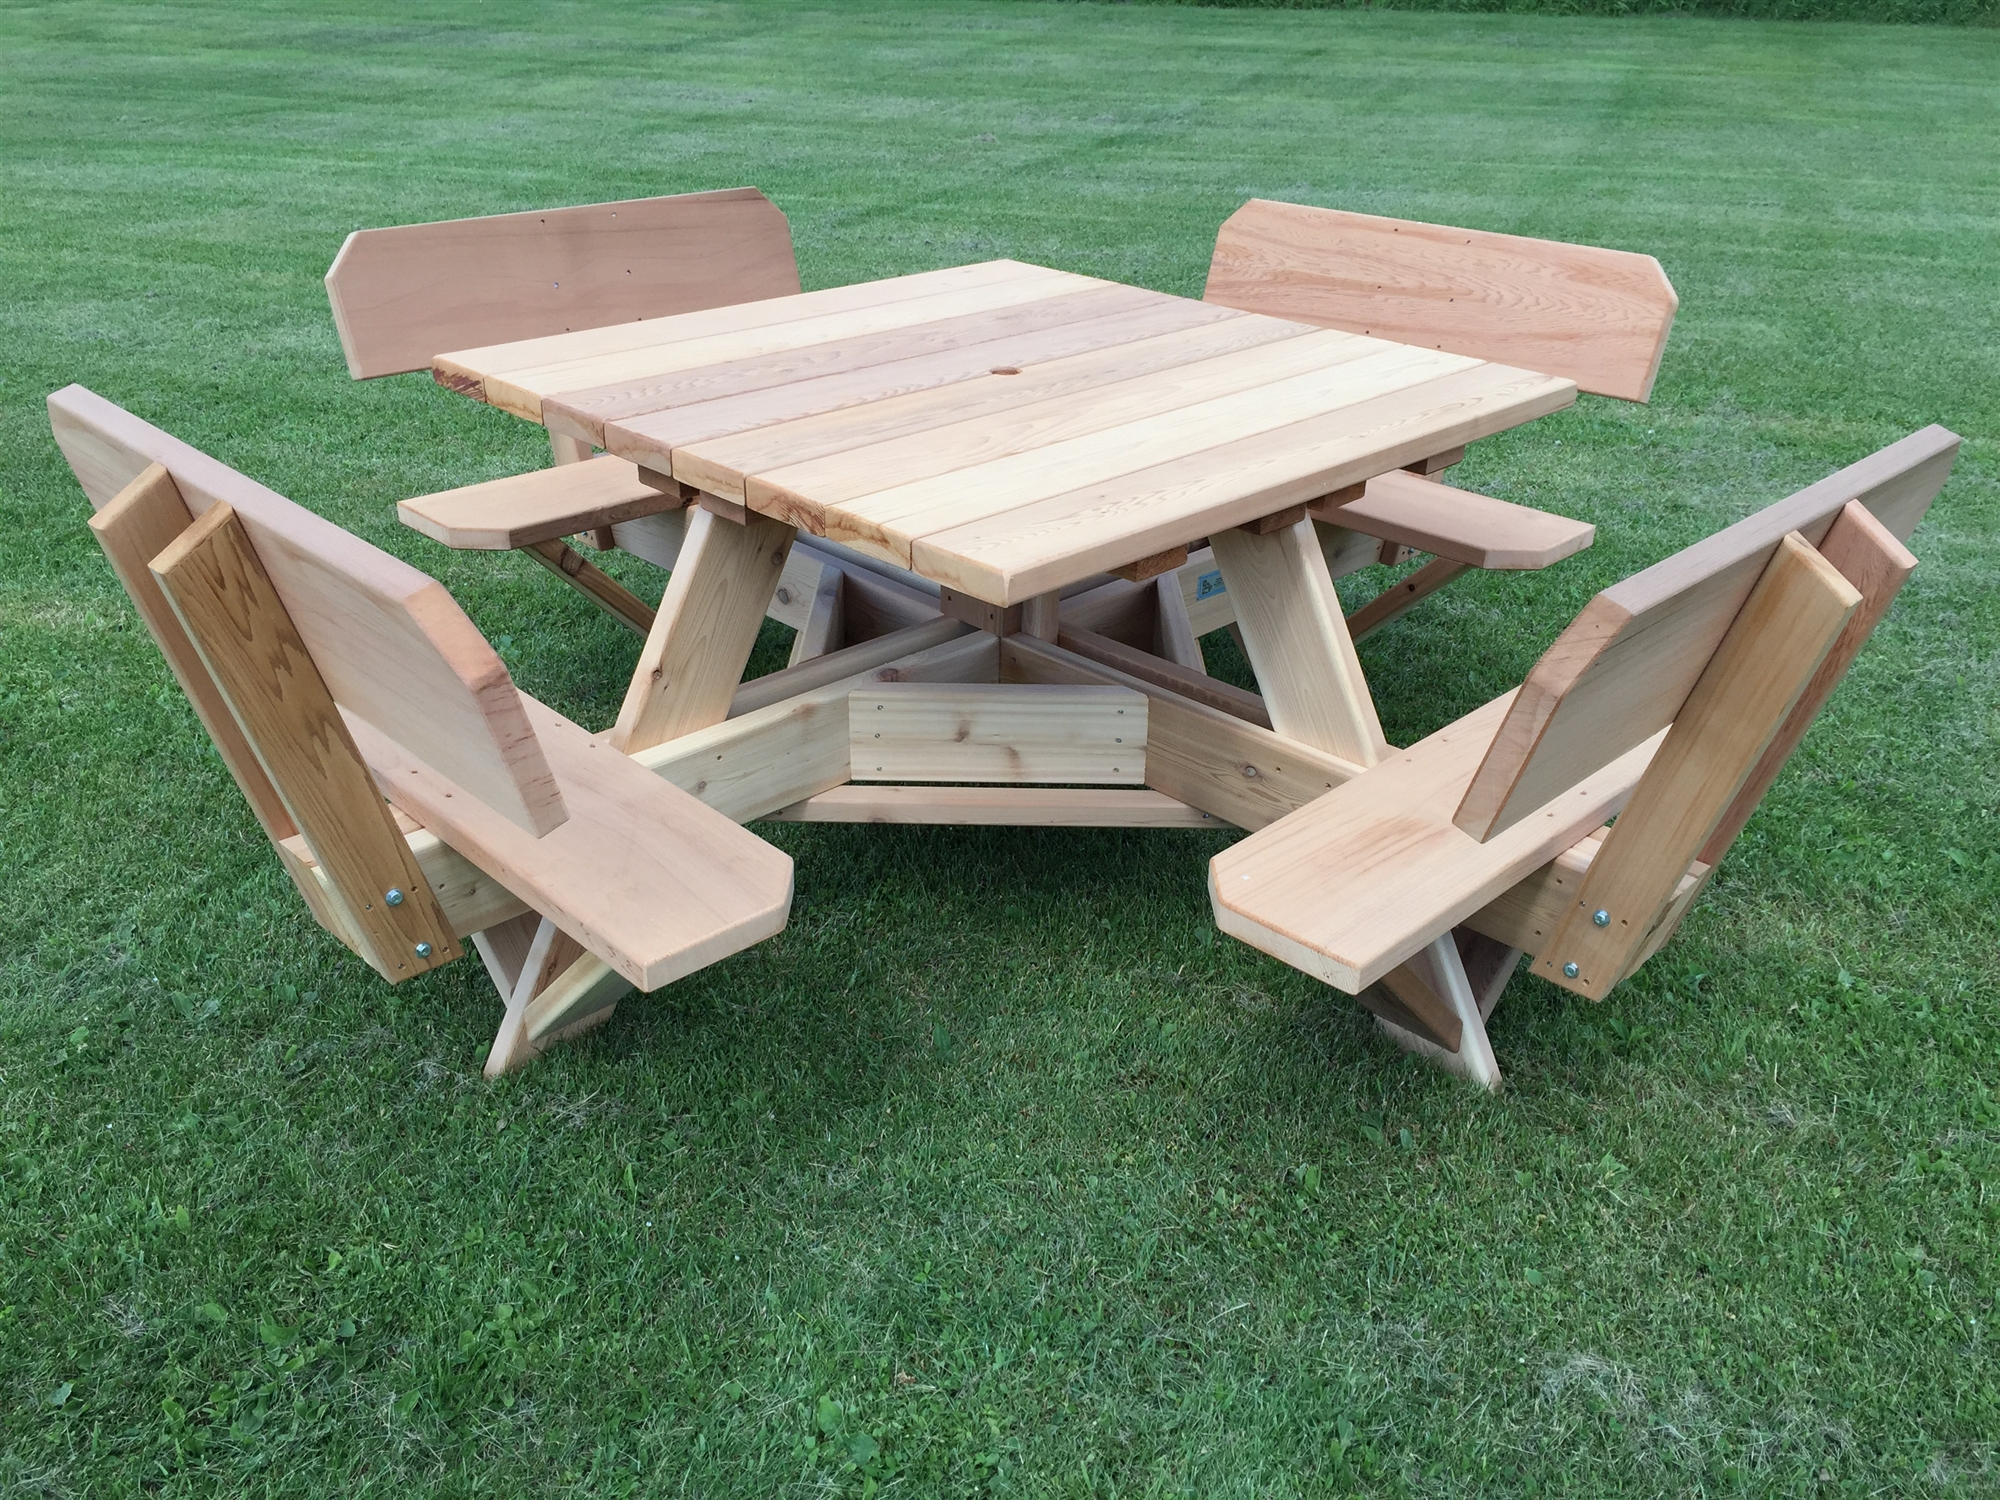 45 square picnic table with backs on seats